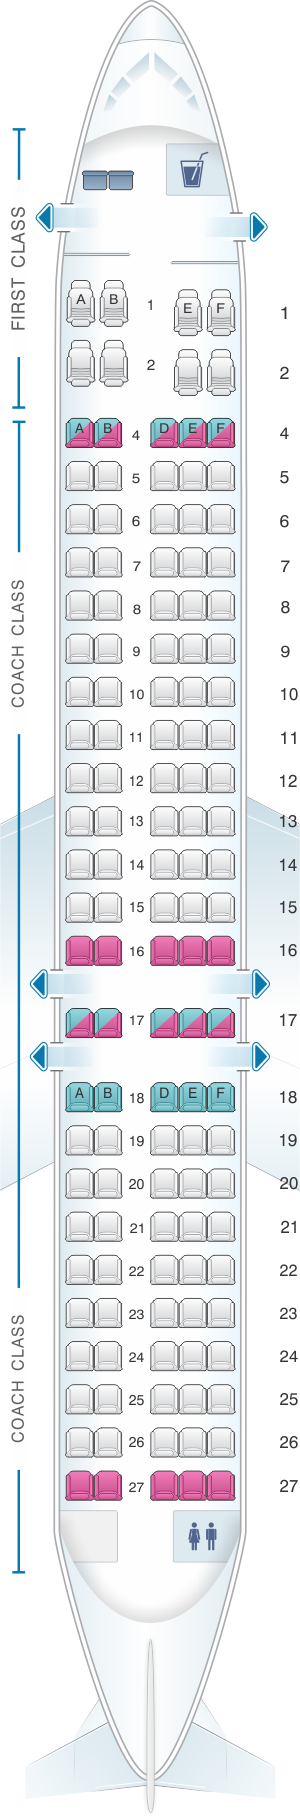 Seat map for Hawaiian Airlines Boeing B717 200